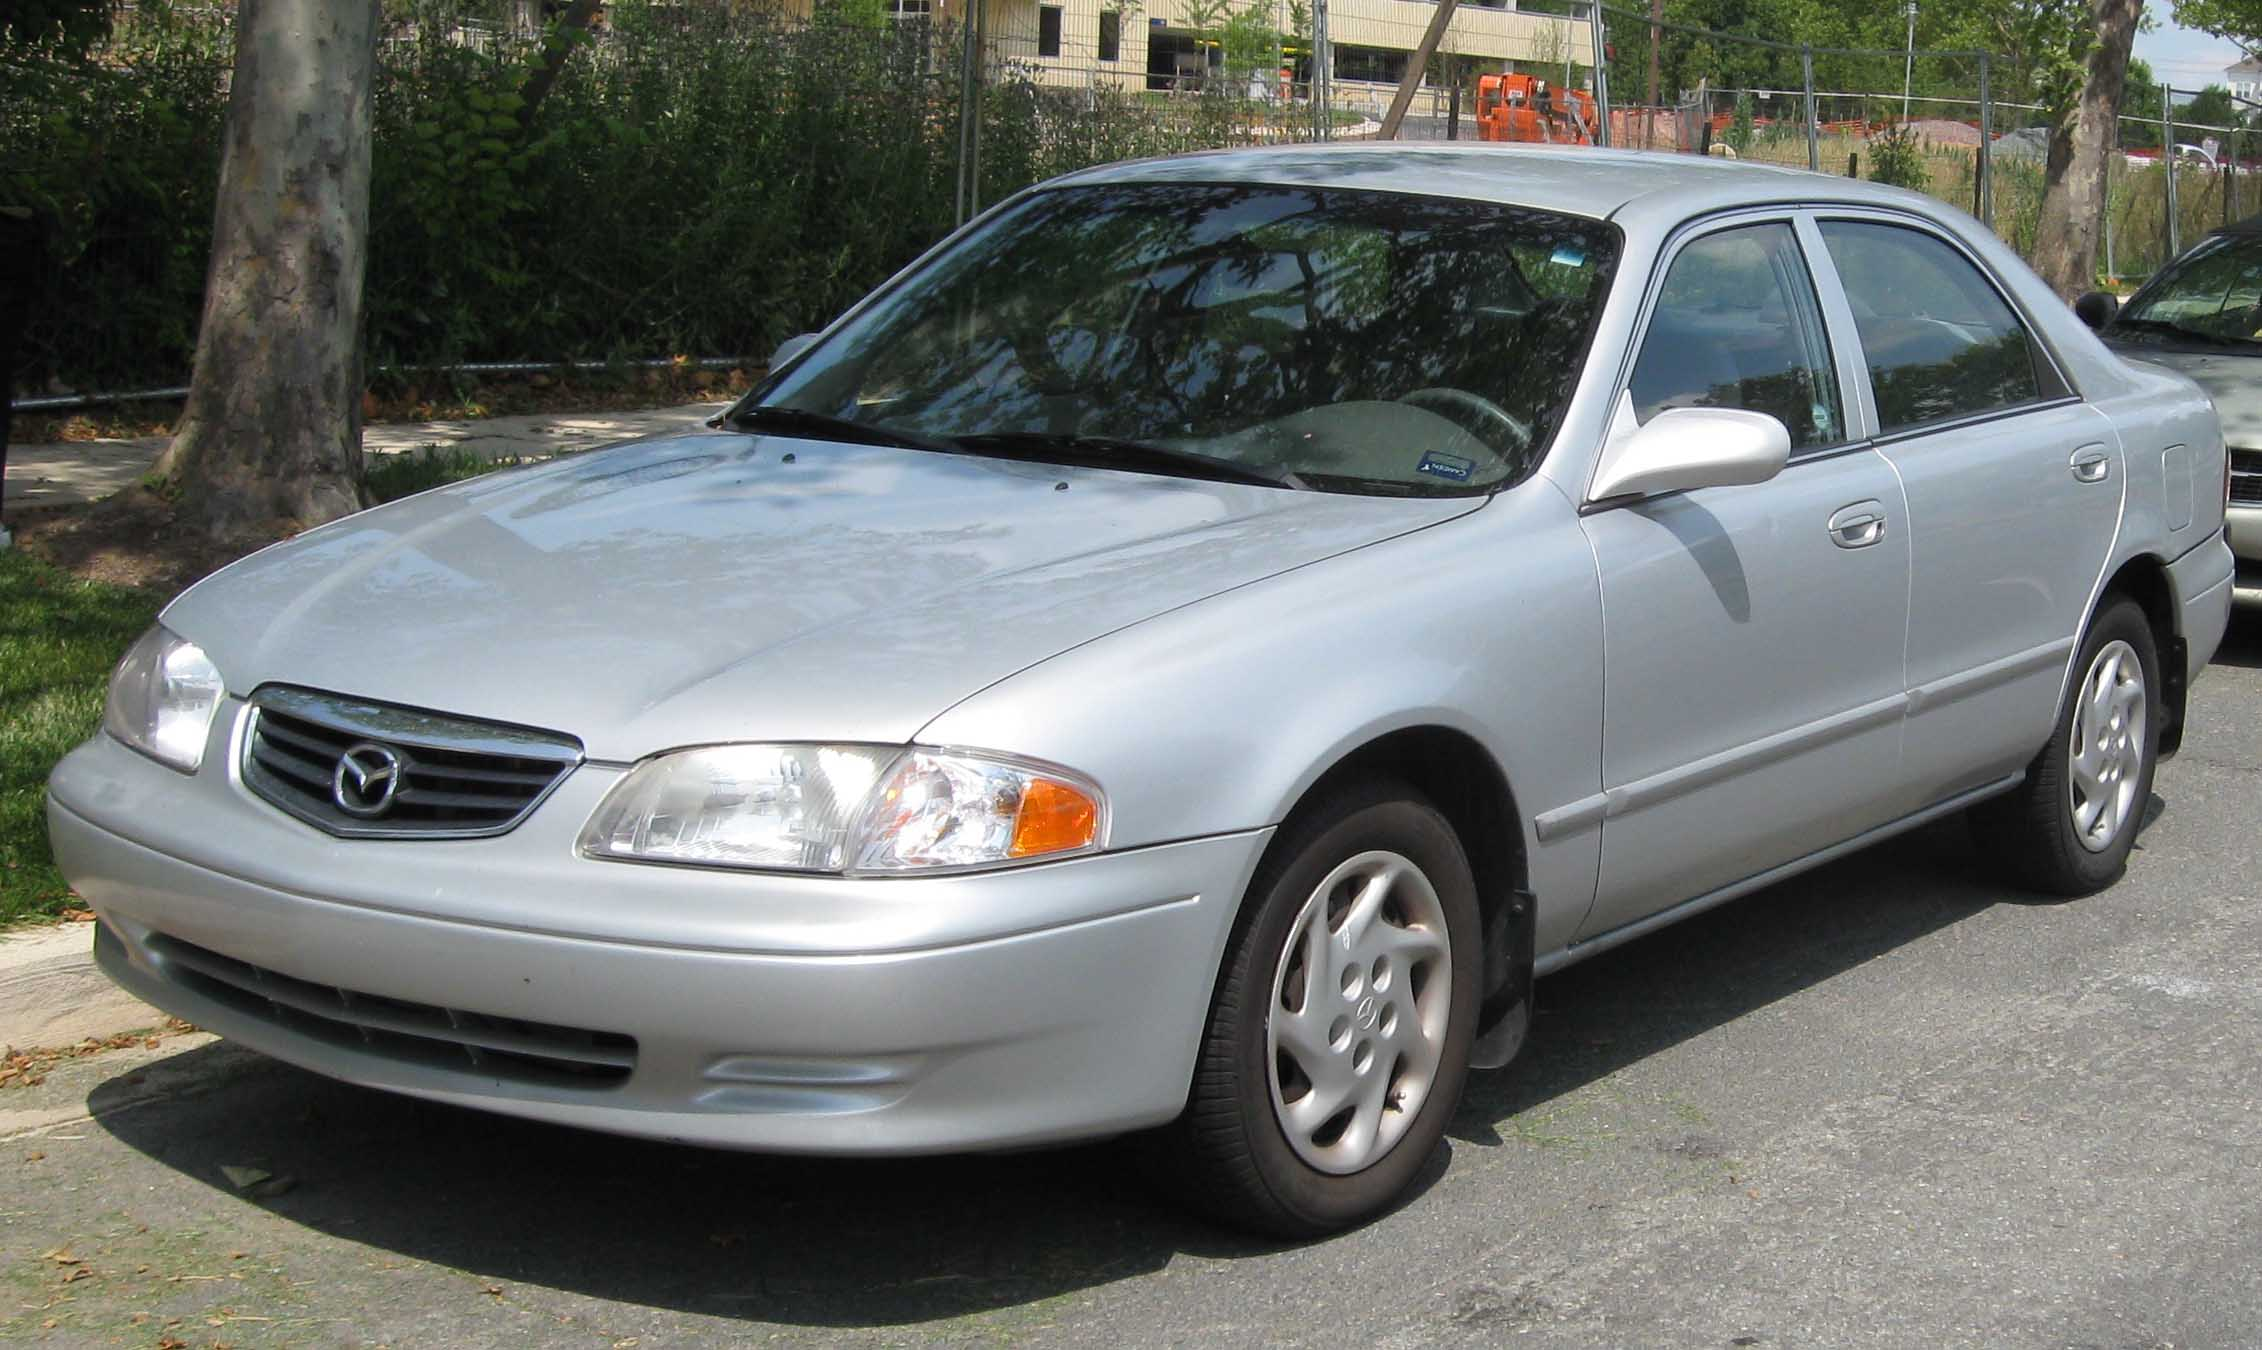 File:00-02 Mazda 626 LX.jpg - Wikimedia Commons